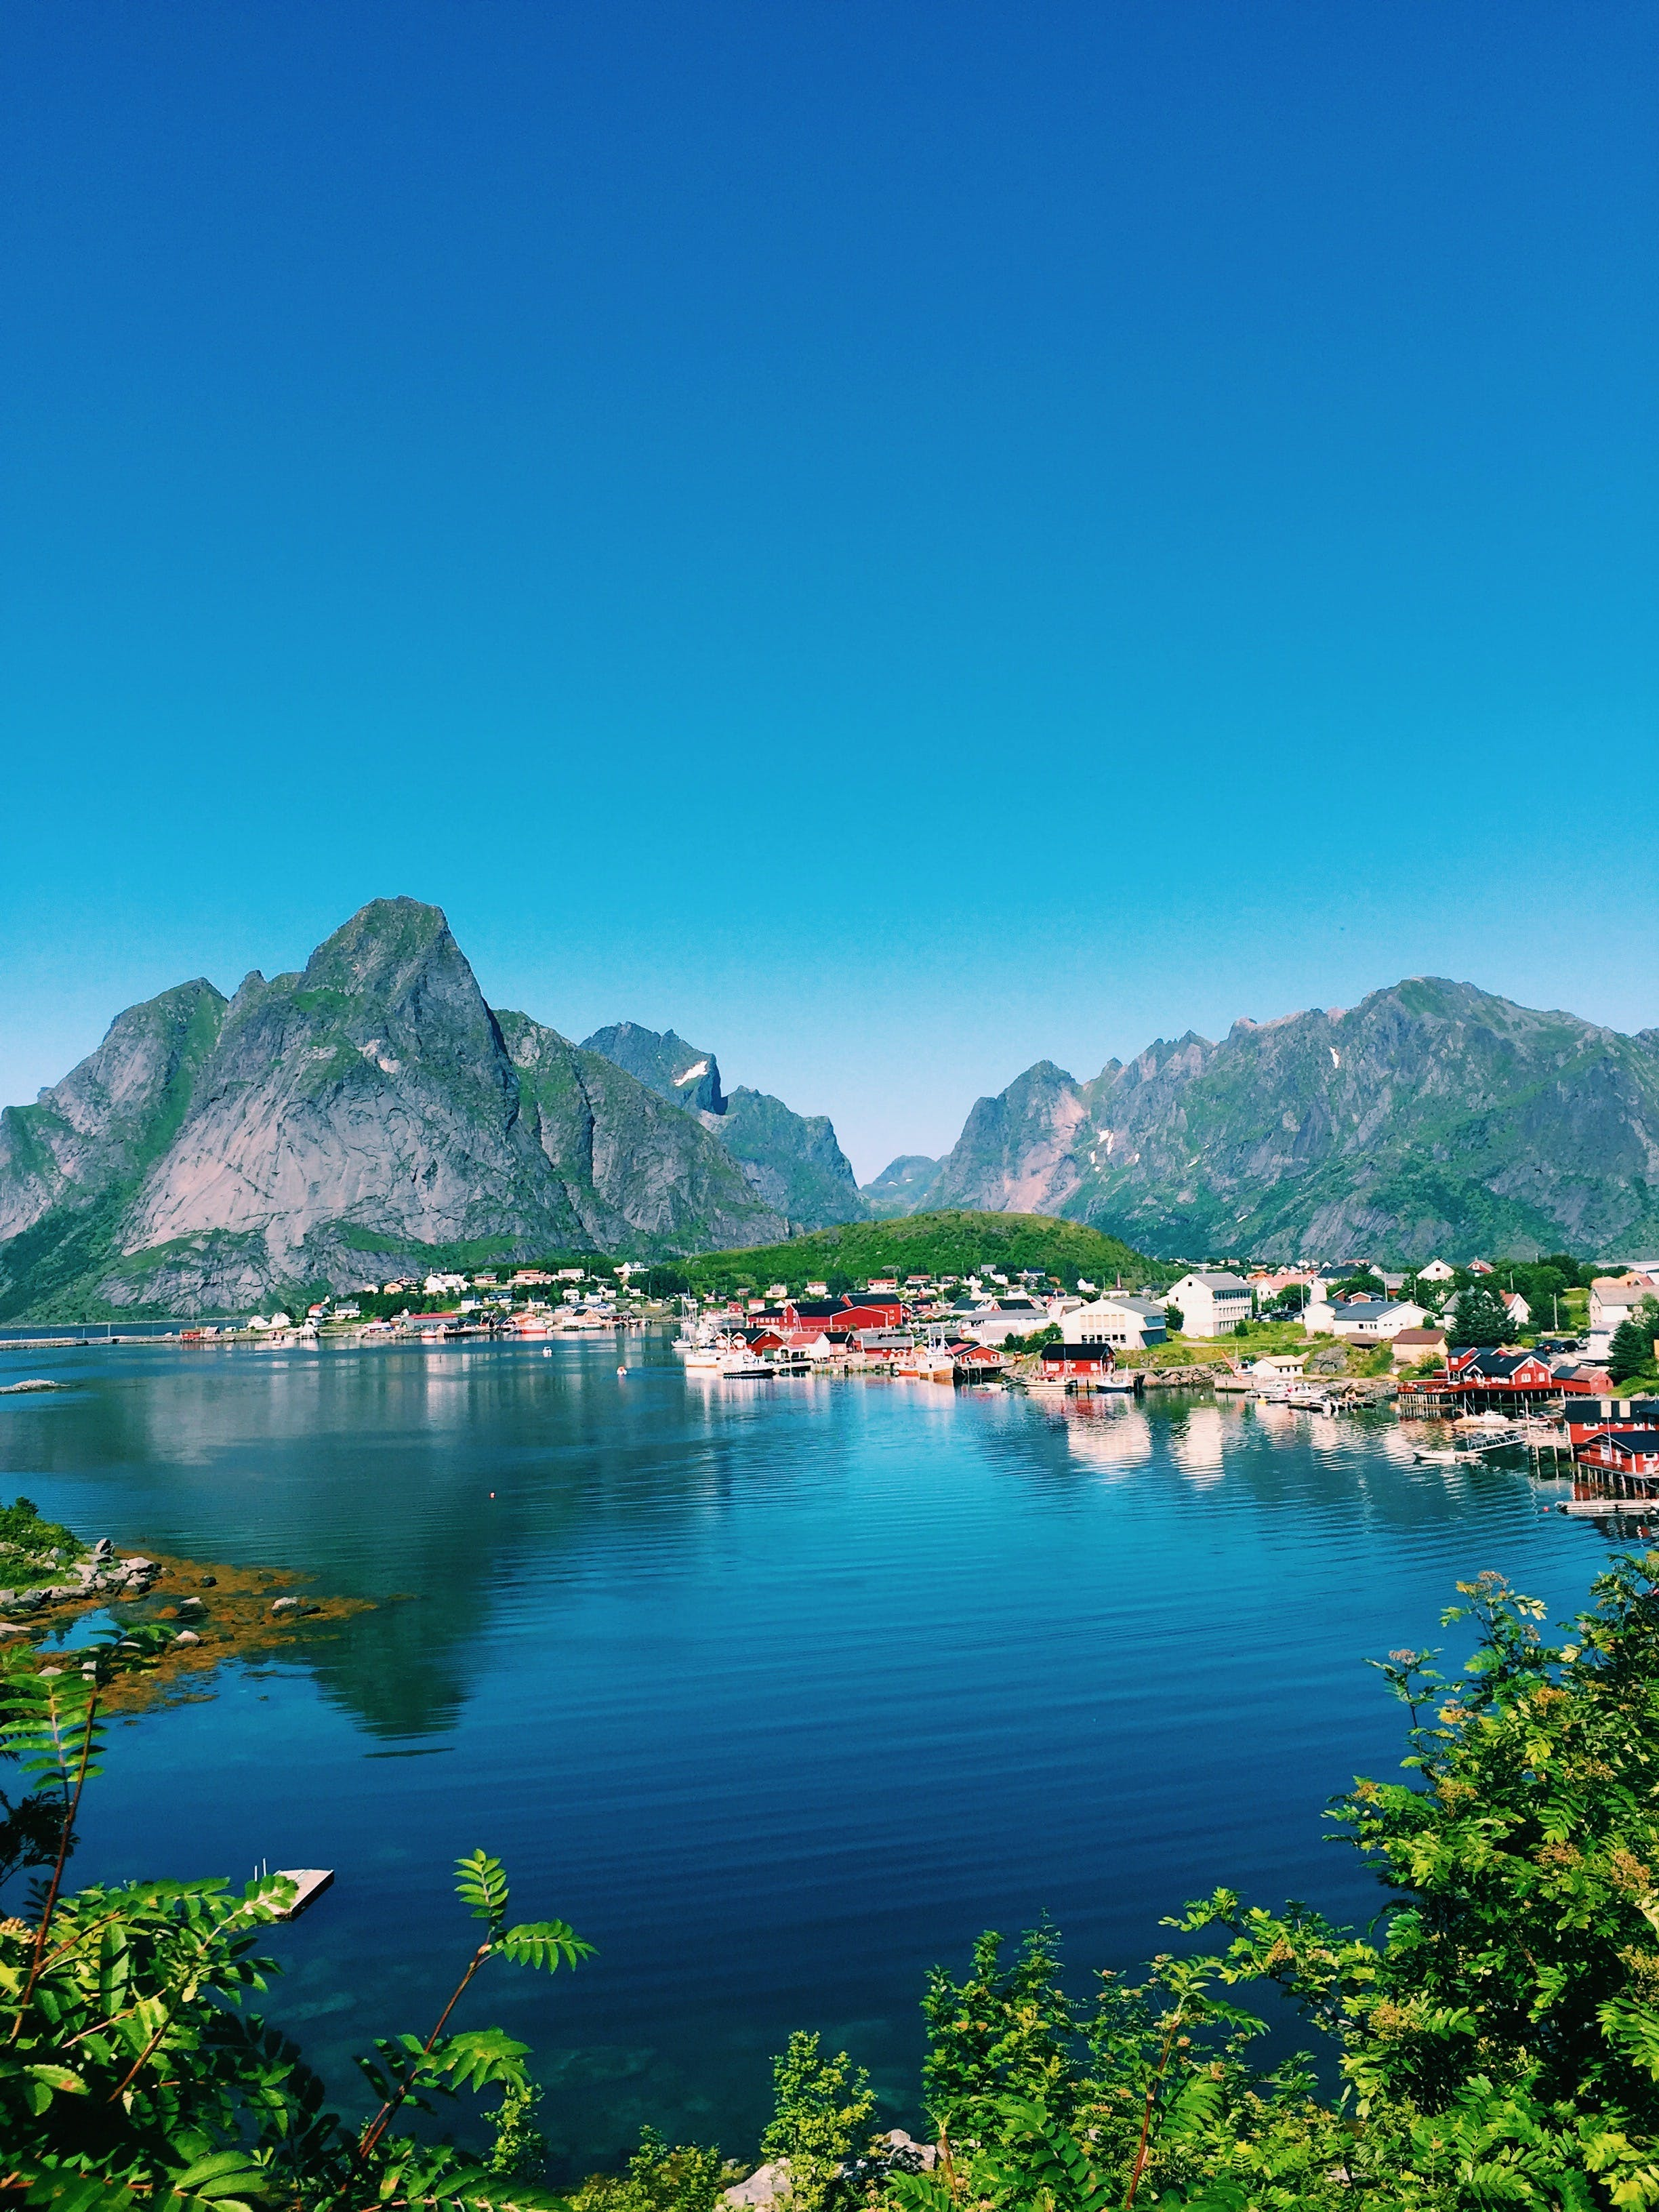 Large Body of Water Across Village and Mountains Under Blue Skies